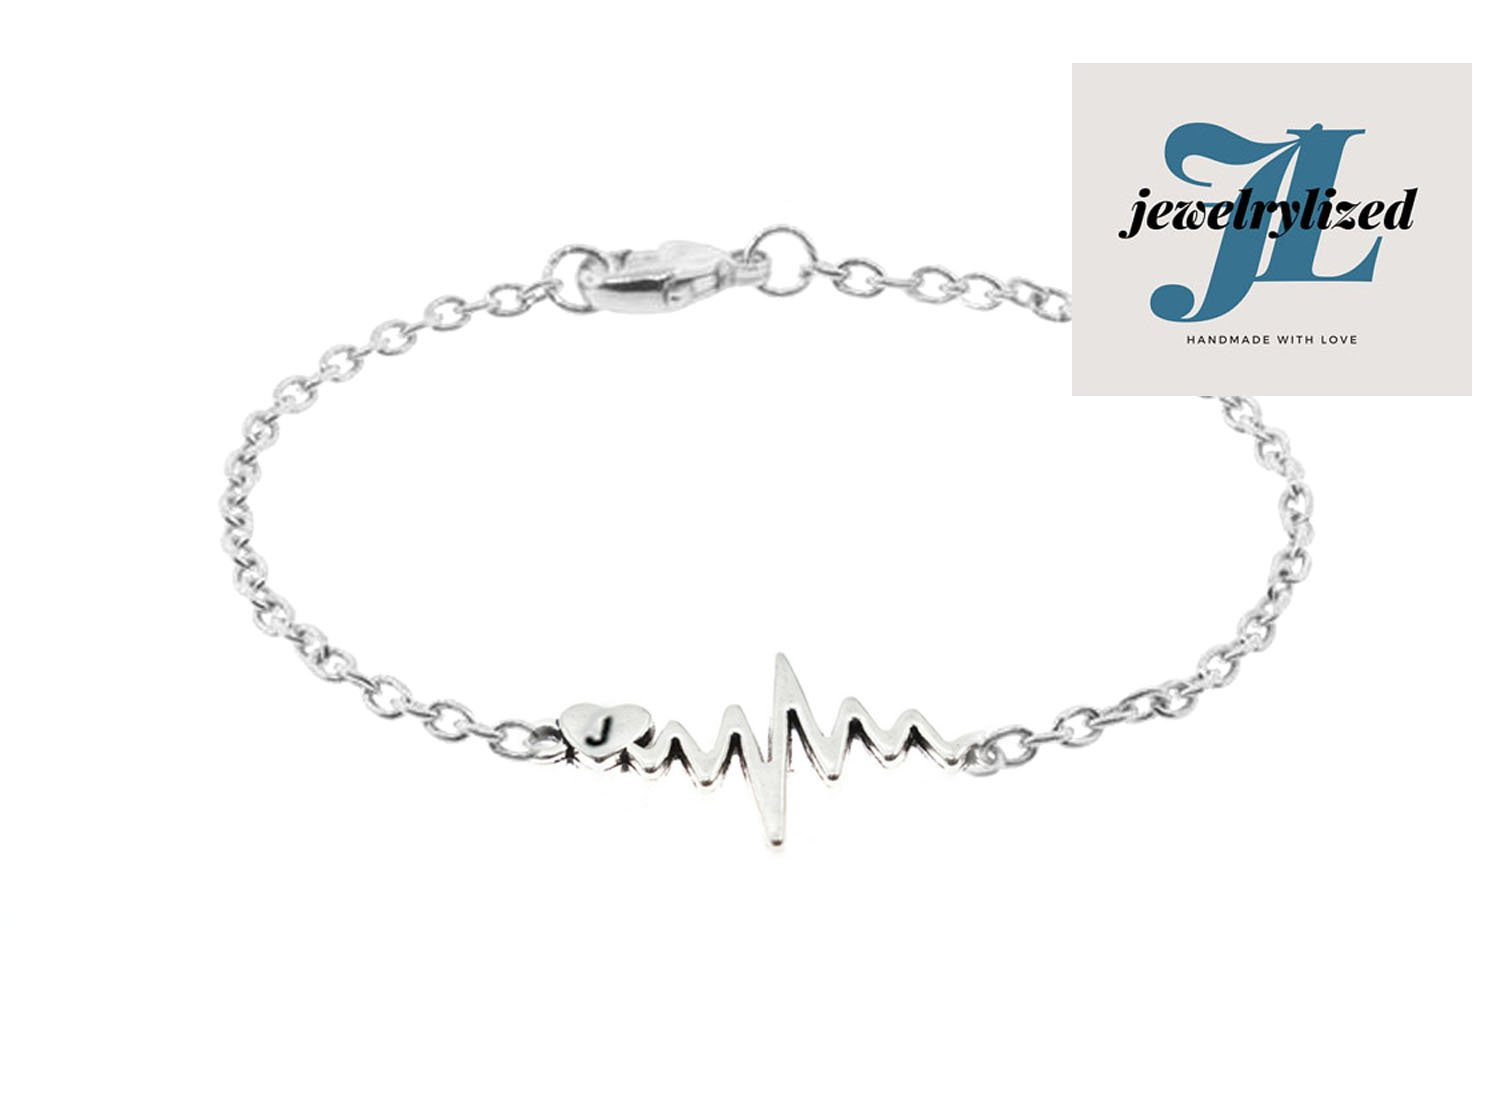 ECG Heartbeat Initial Silver Plated Chain Bracelet - Jewelrylized.com